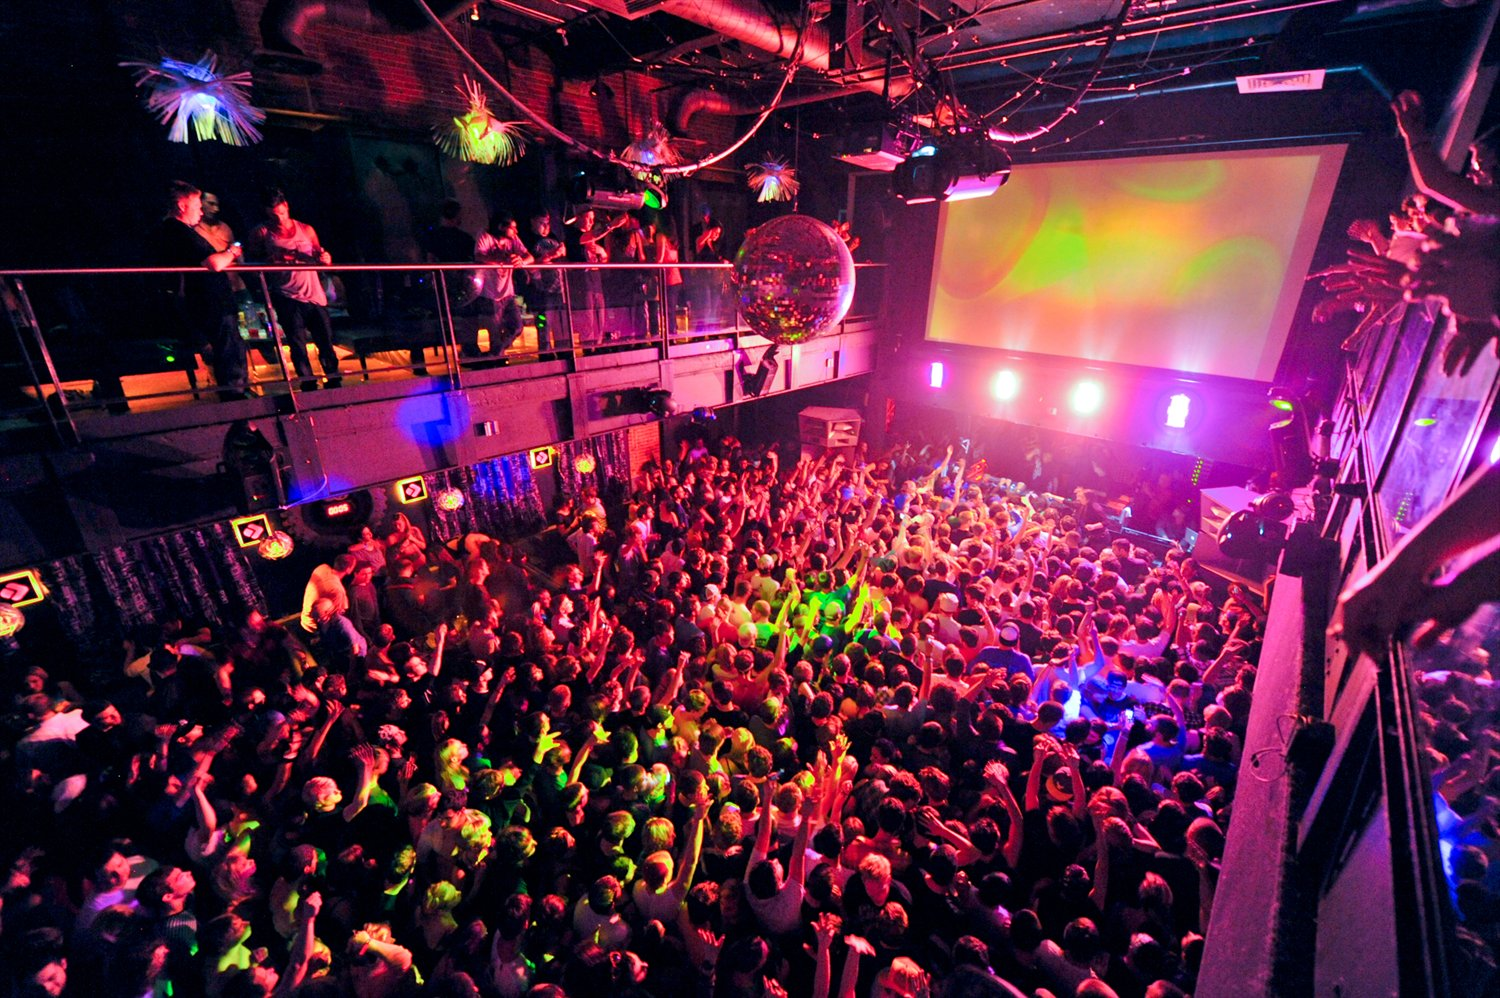 Snails  Denver Colo tickets and lineup on Apr 3 2015